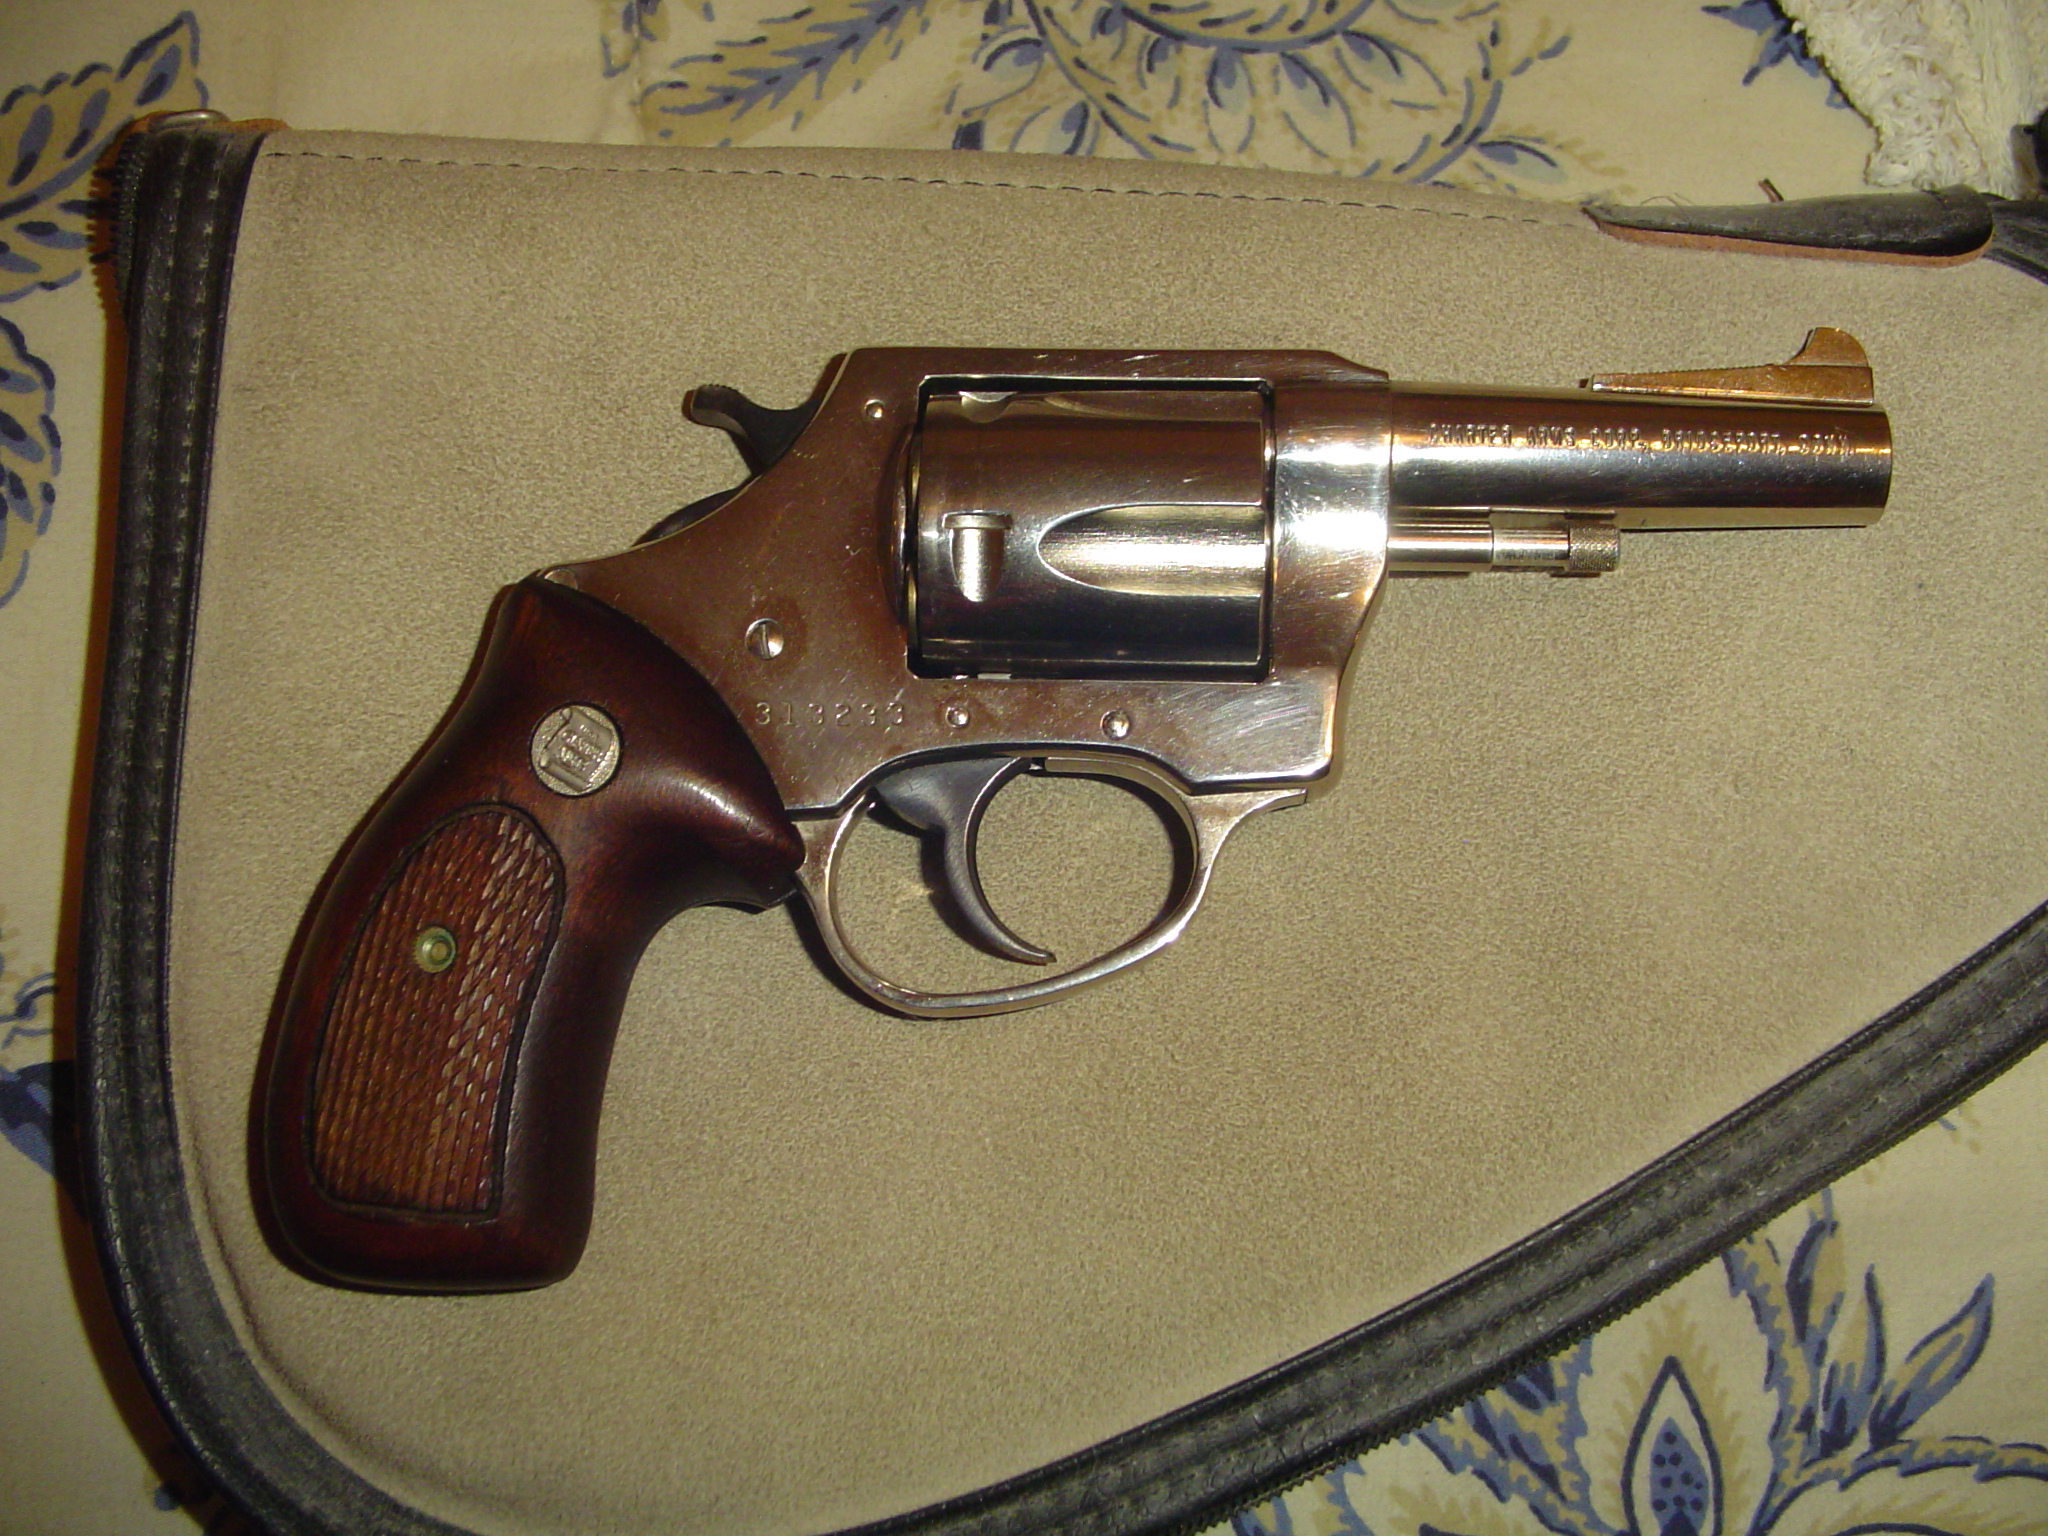 My wife's .44 SPL Charter Arms Bulldog.-dsc02888.jpg